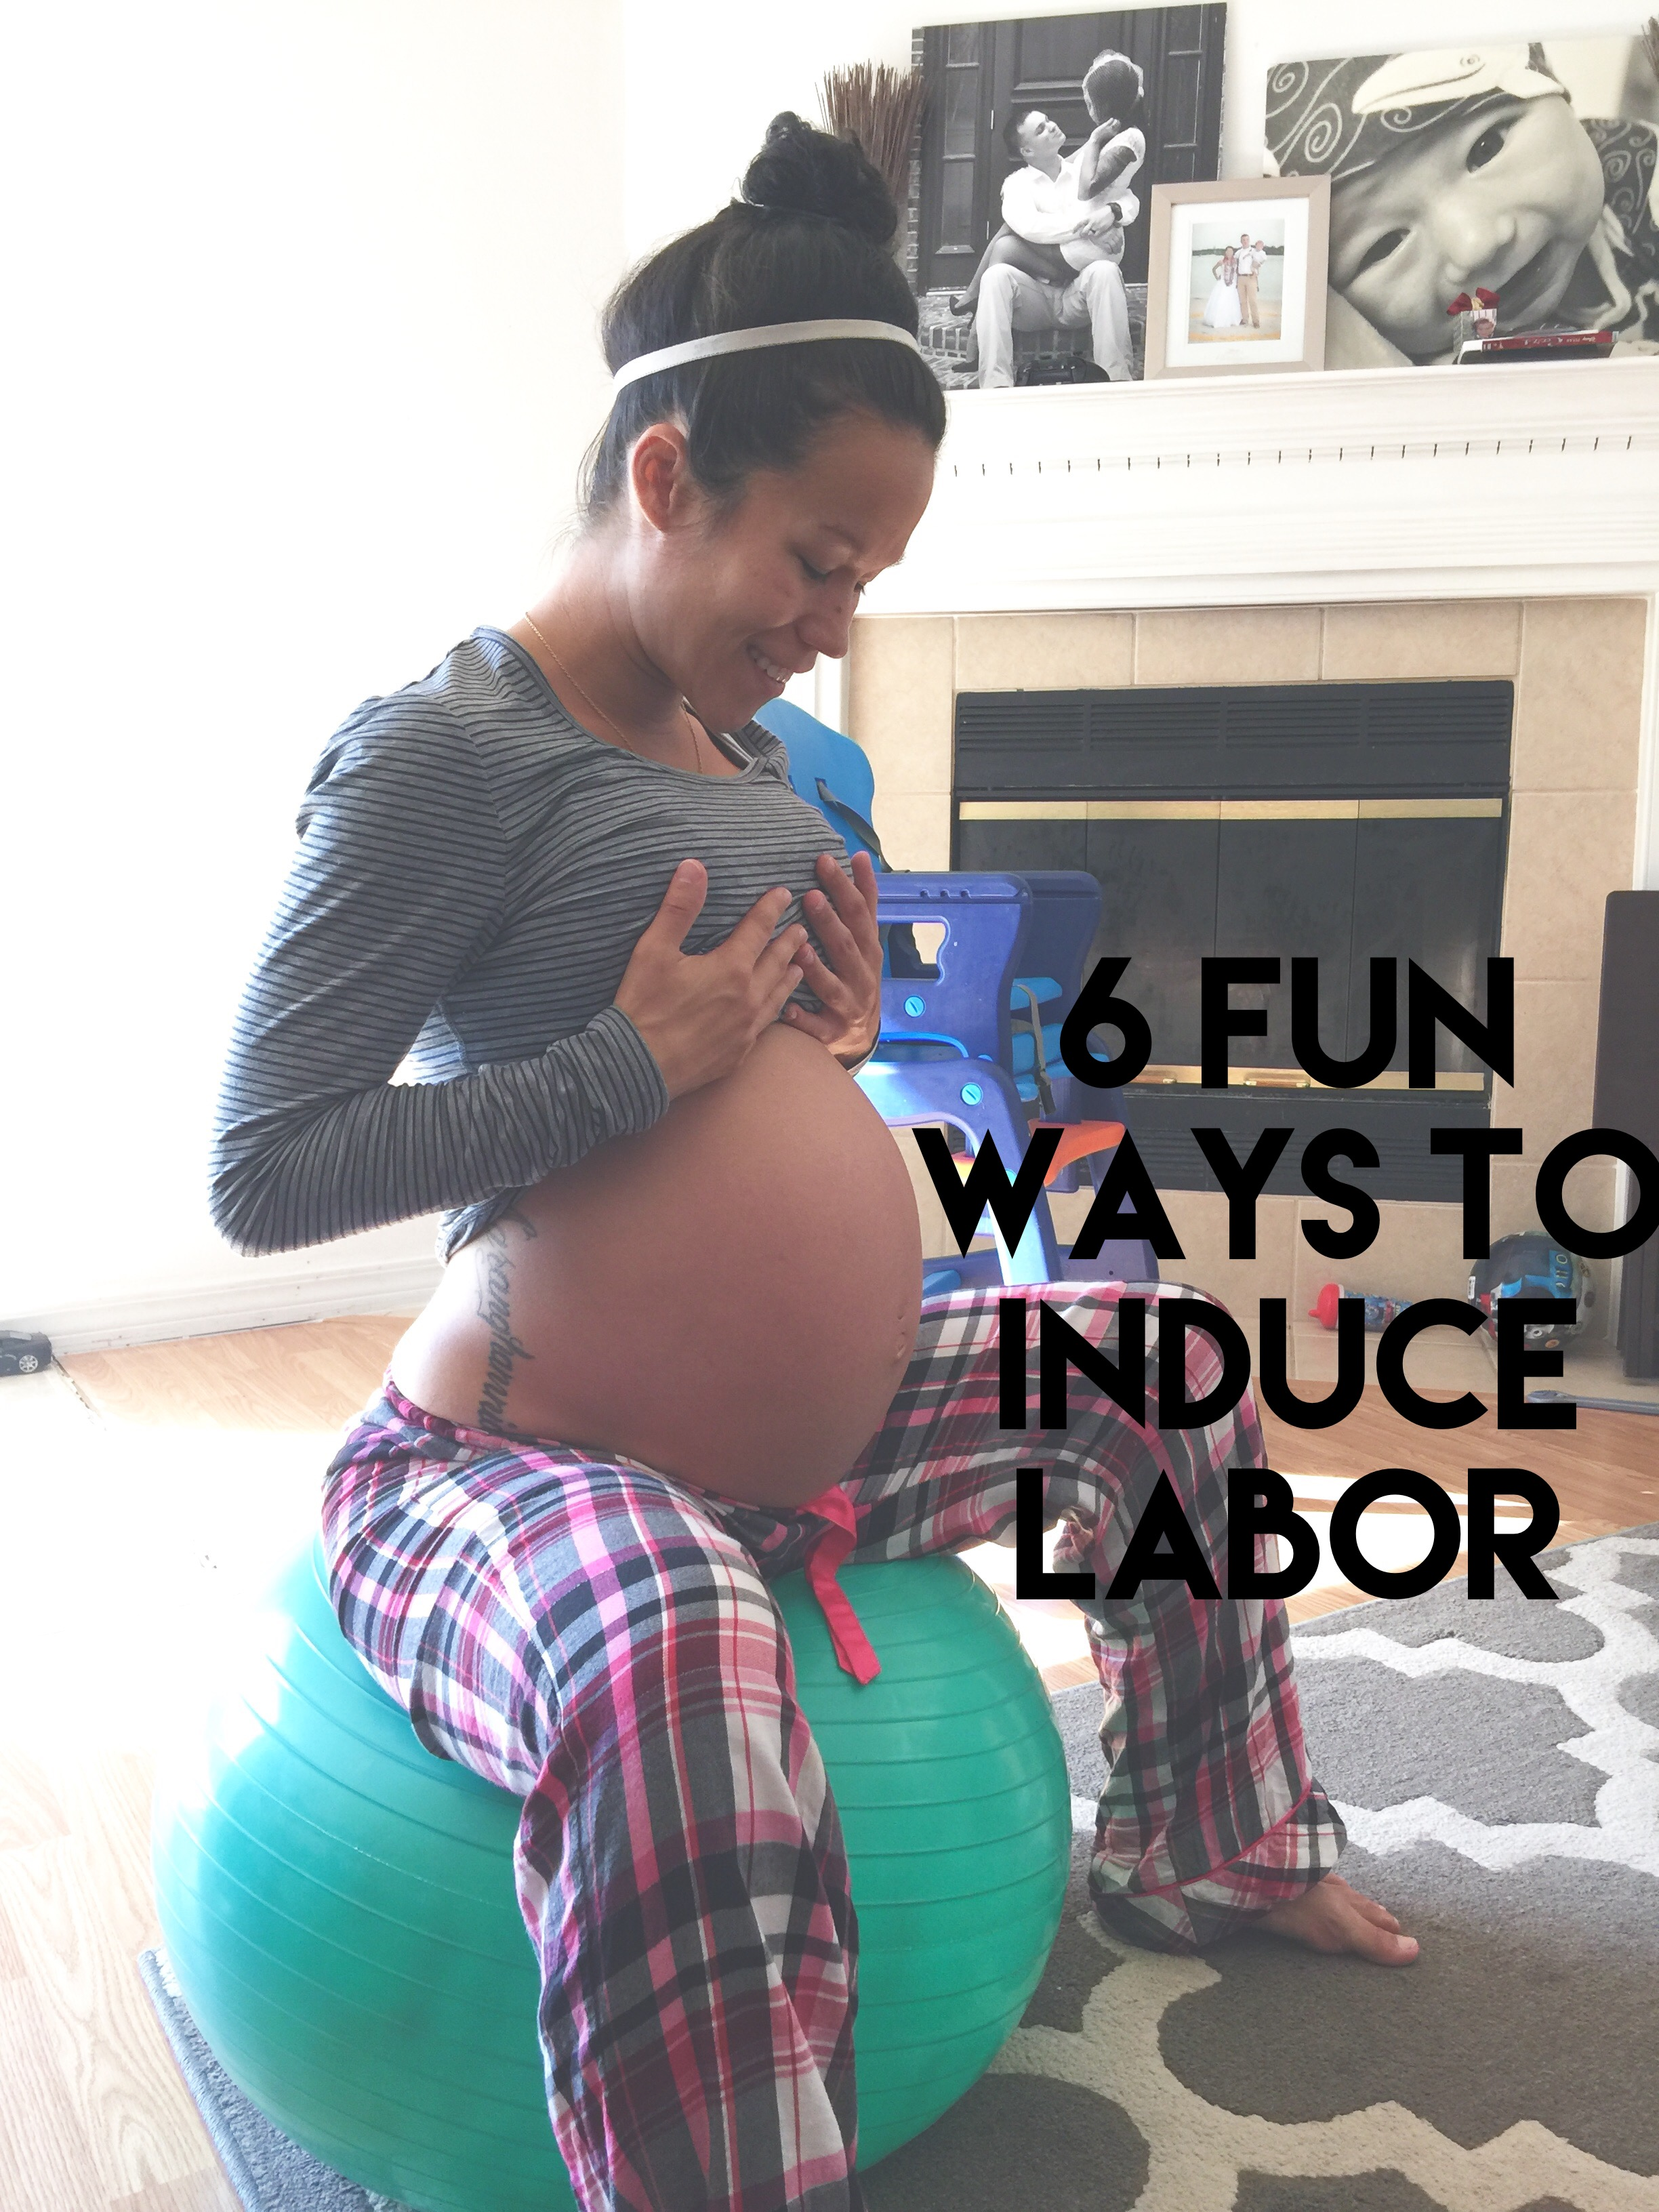 I'll take 8 Pineapples: Foods to induce labour naturally now